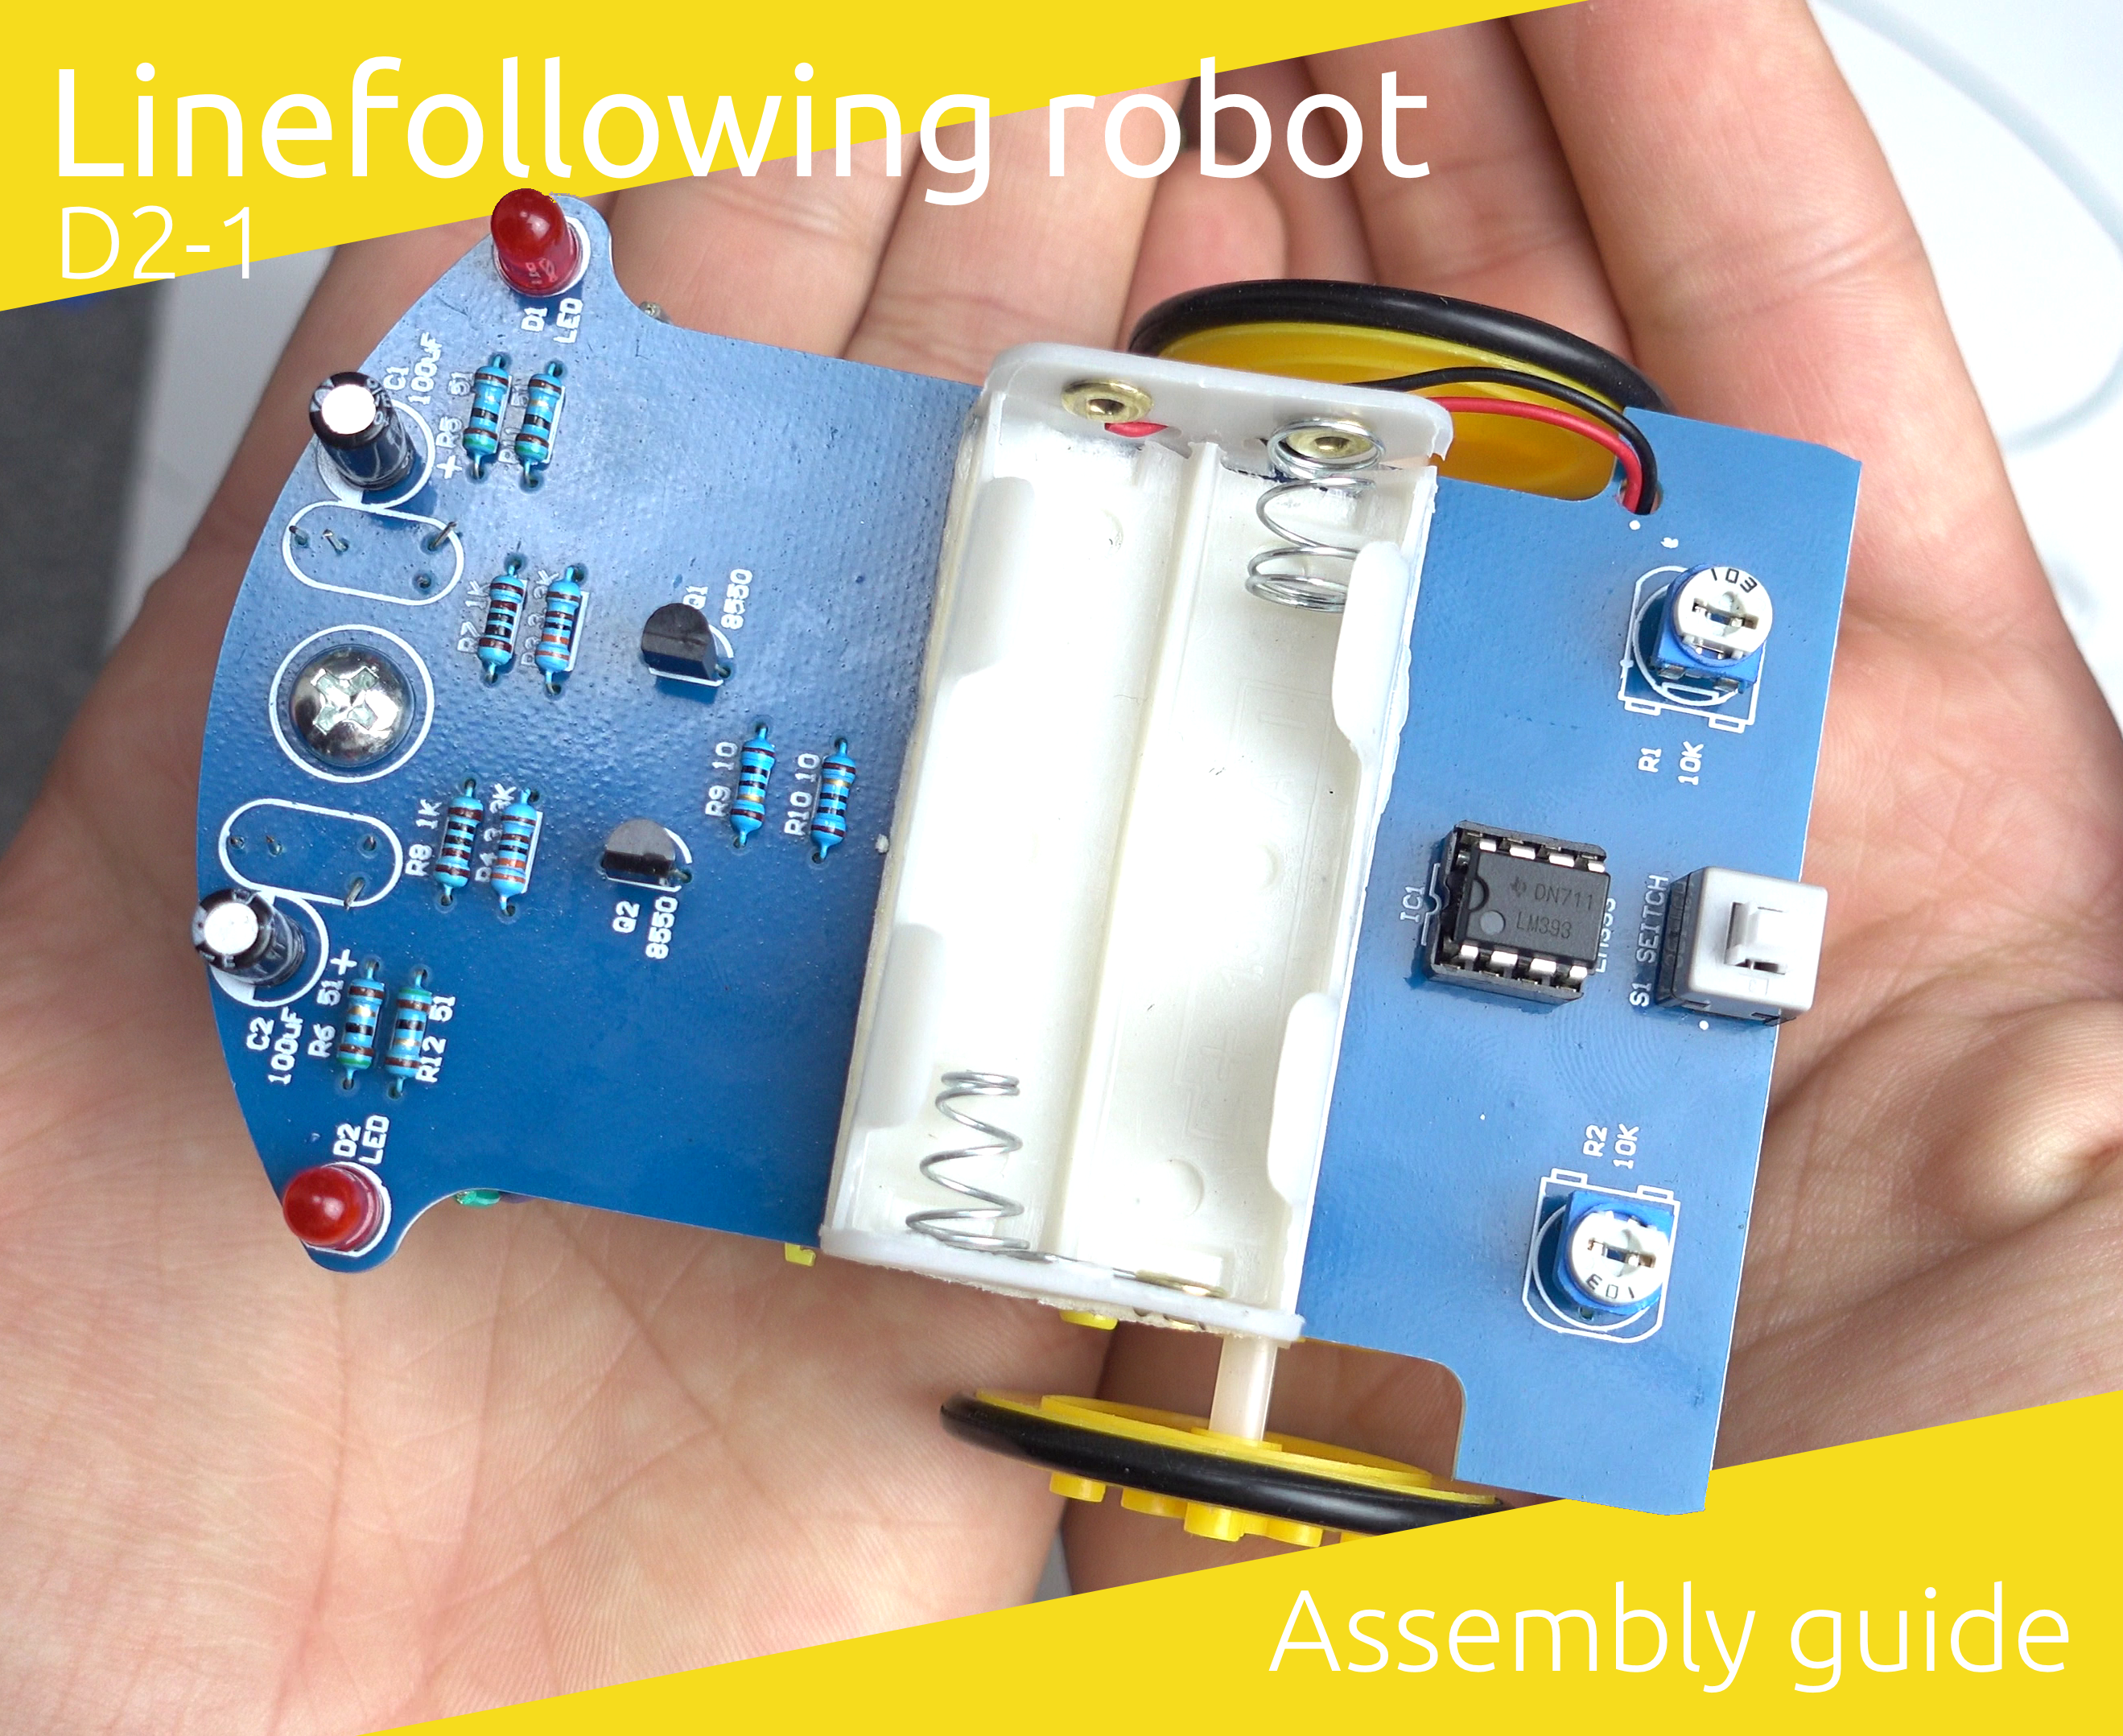 Picture of D2-1 Linefollowing Robot Assembly Guide - Ultra Cheap Robot Kit